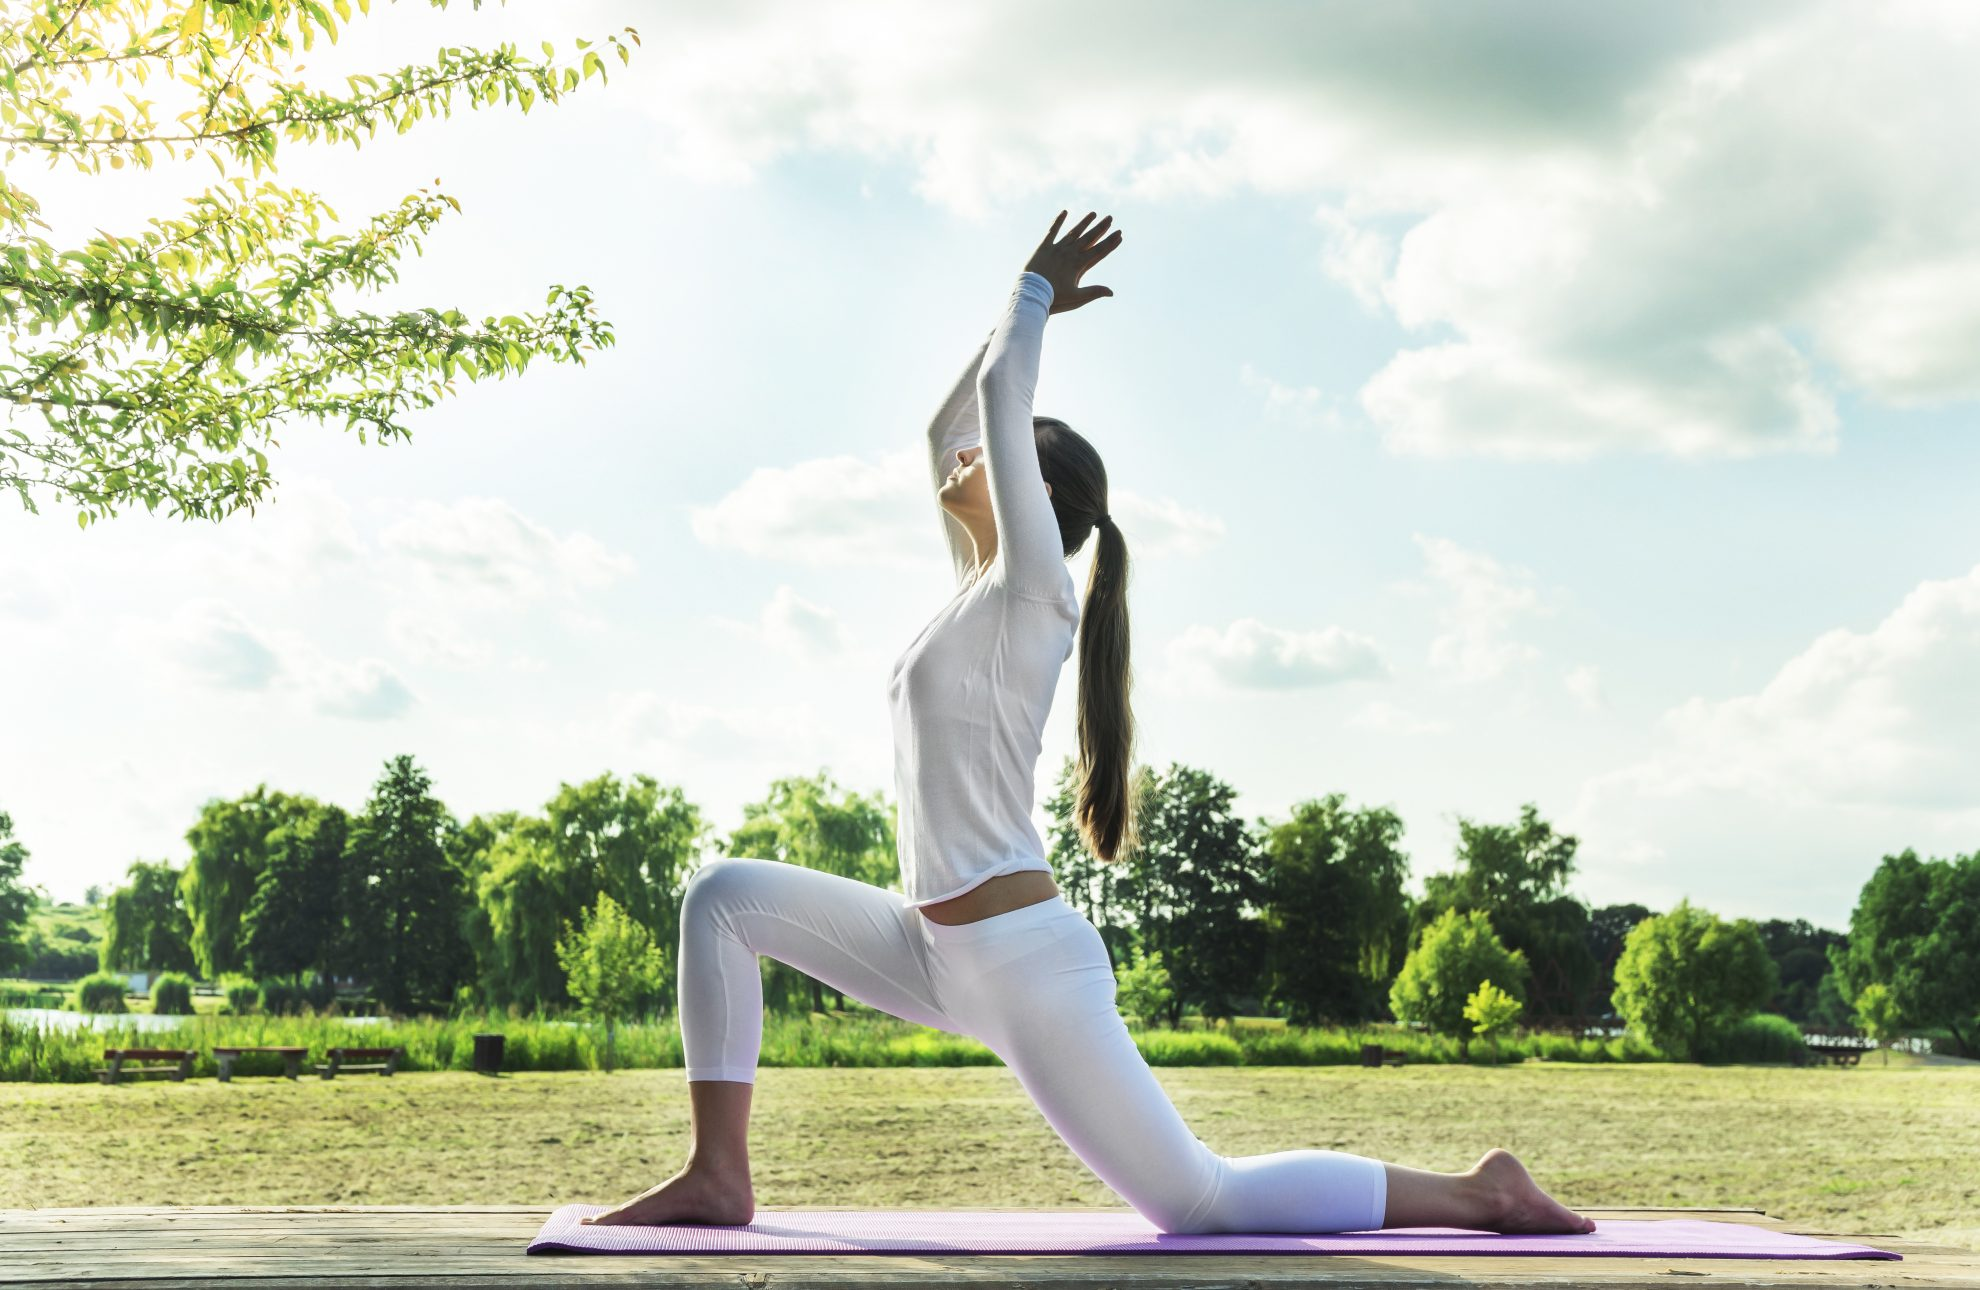 Mindful movement or yoga is a great way to stay awake during meditation